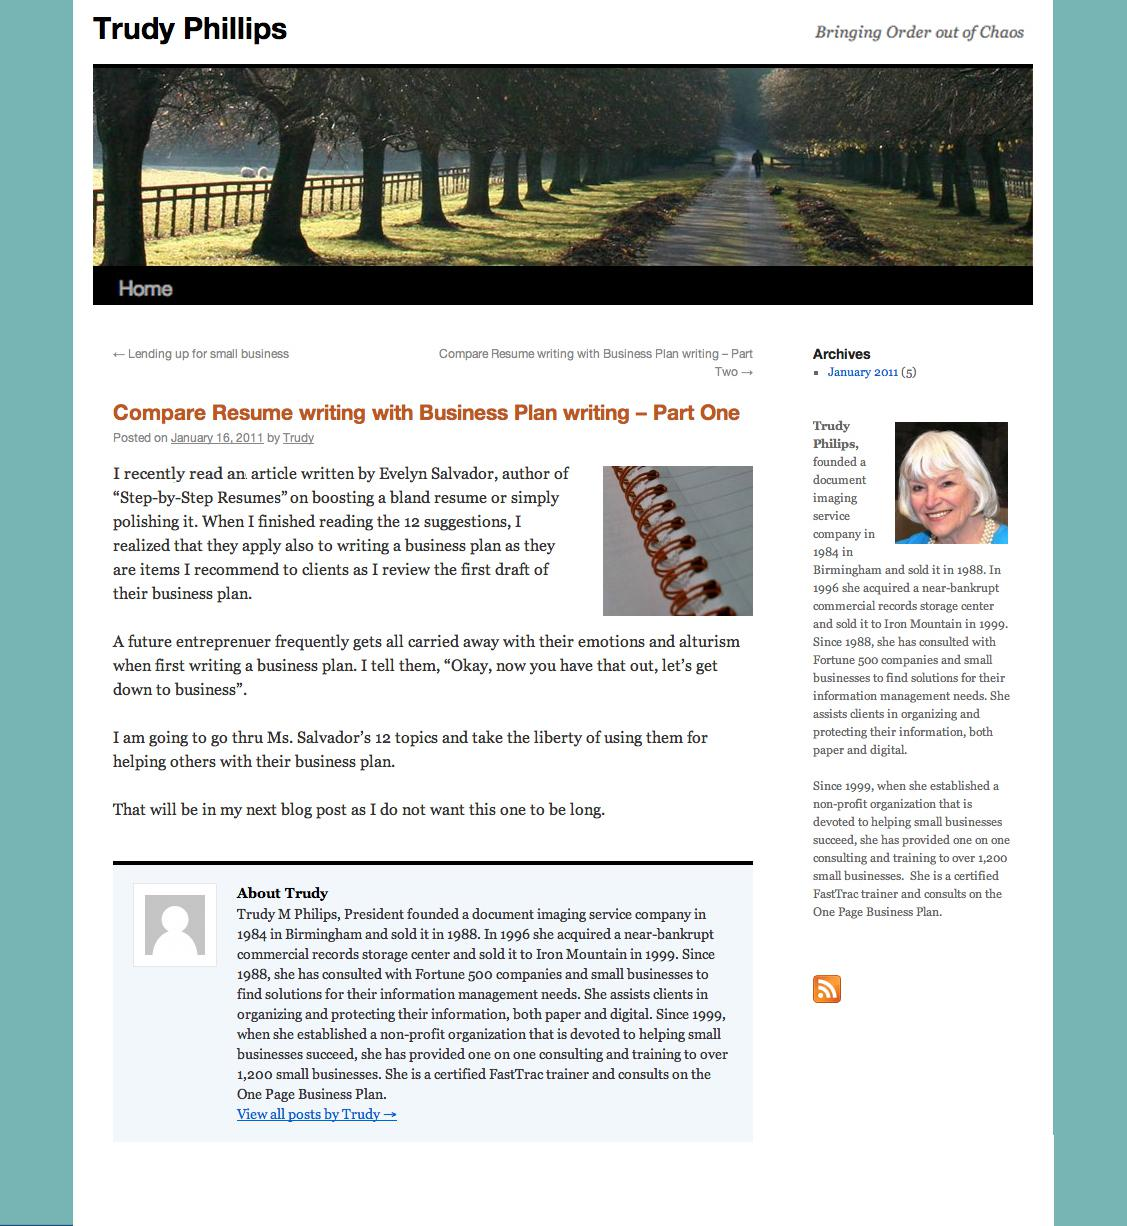 trudy phillips - compare resume writing with bus. plan writing.jpg